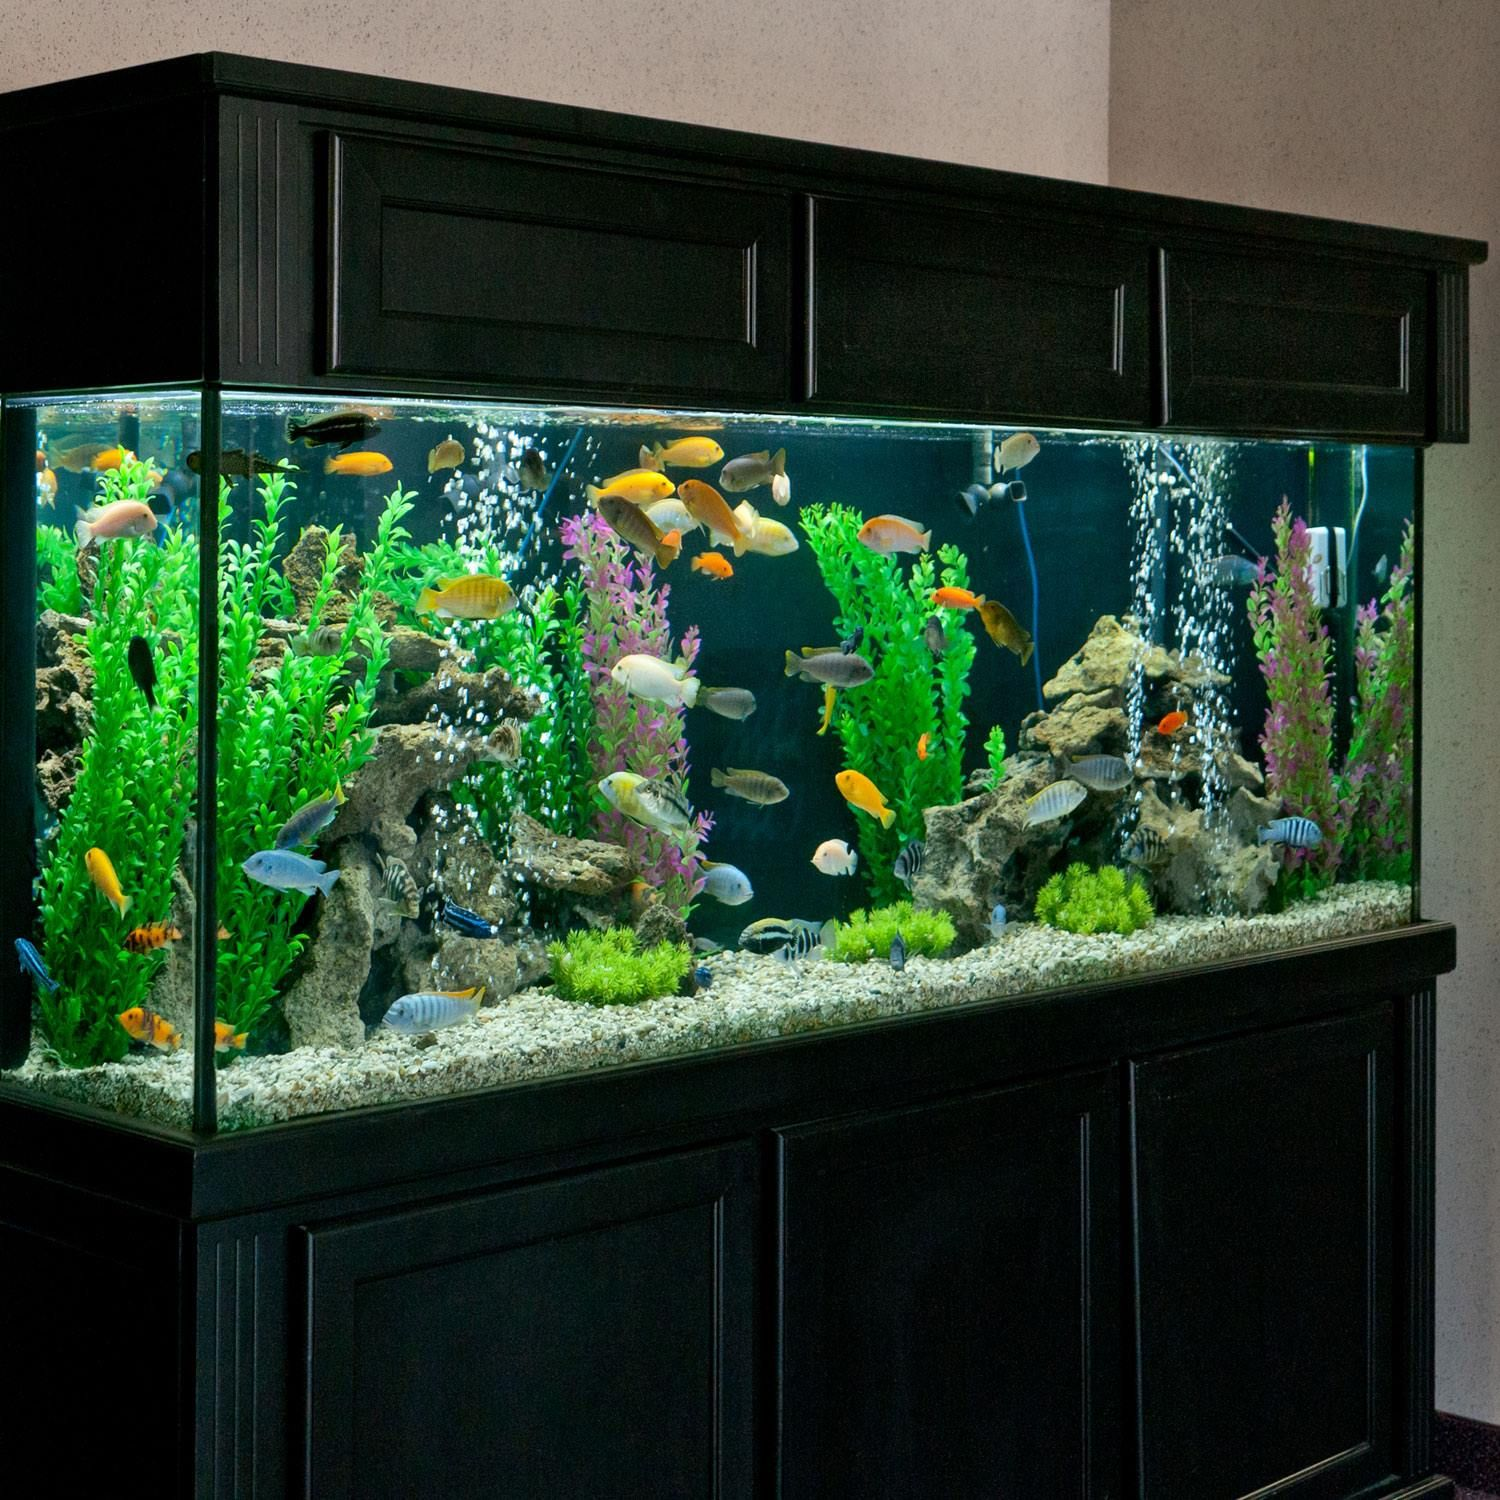 265 gallon african cichlid aquarium petsolutions african cichild office aquarium 265. Black Bedroom Furniture Sets. Home Design Ideas